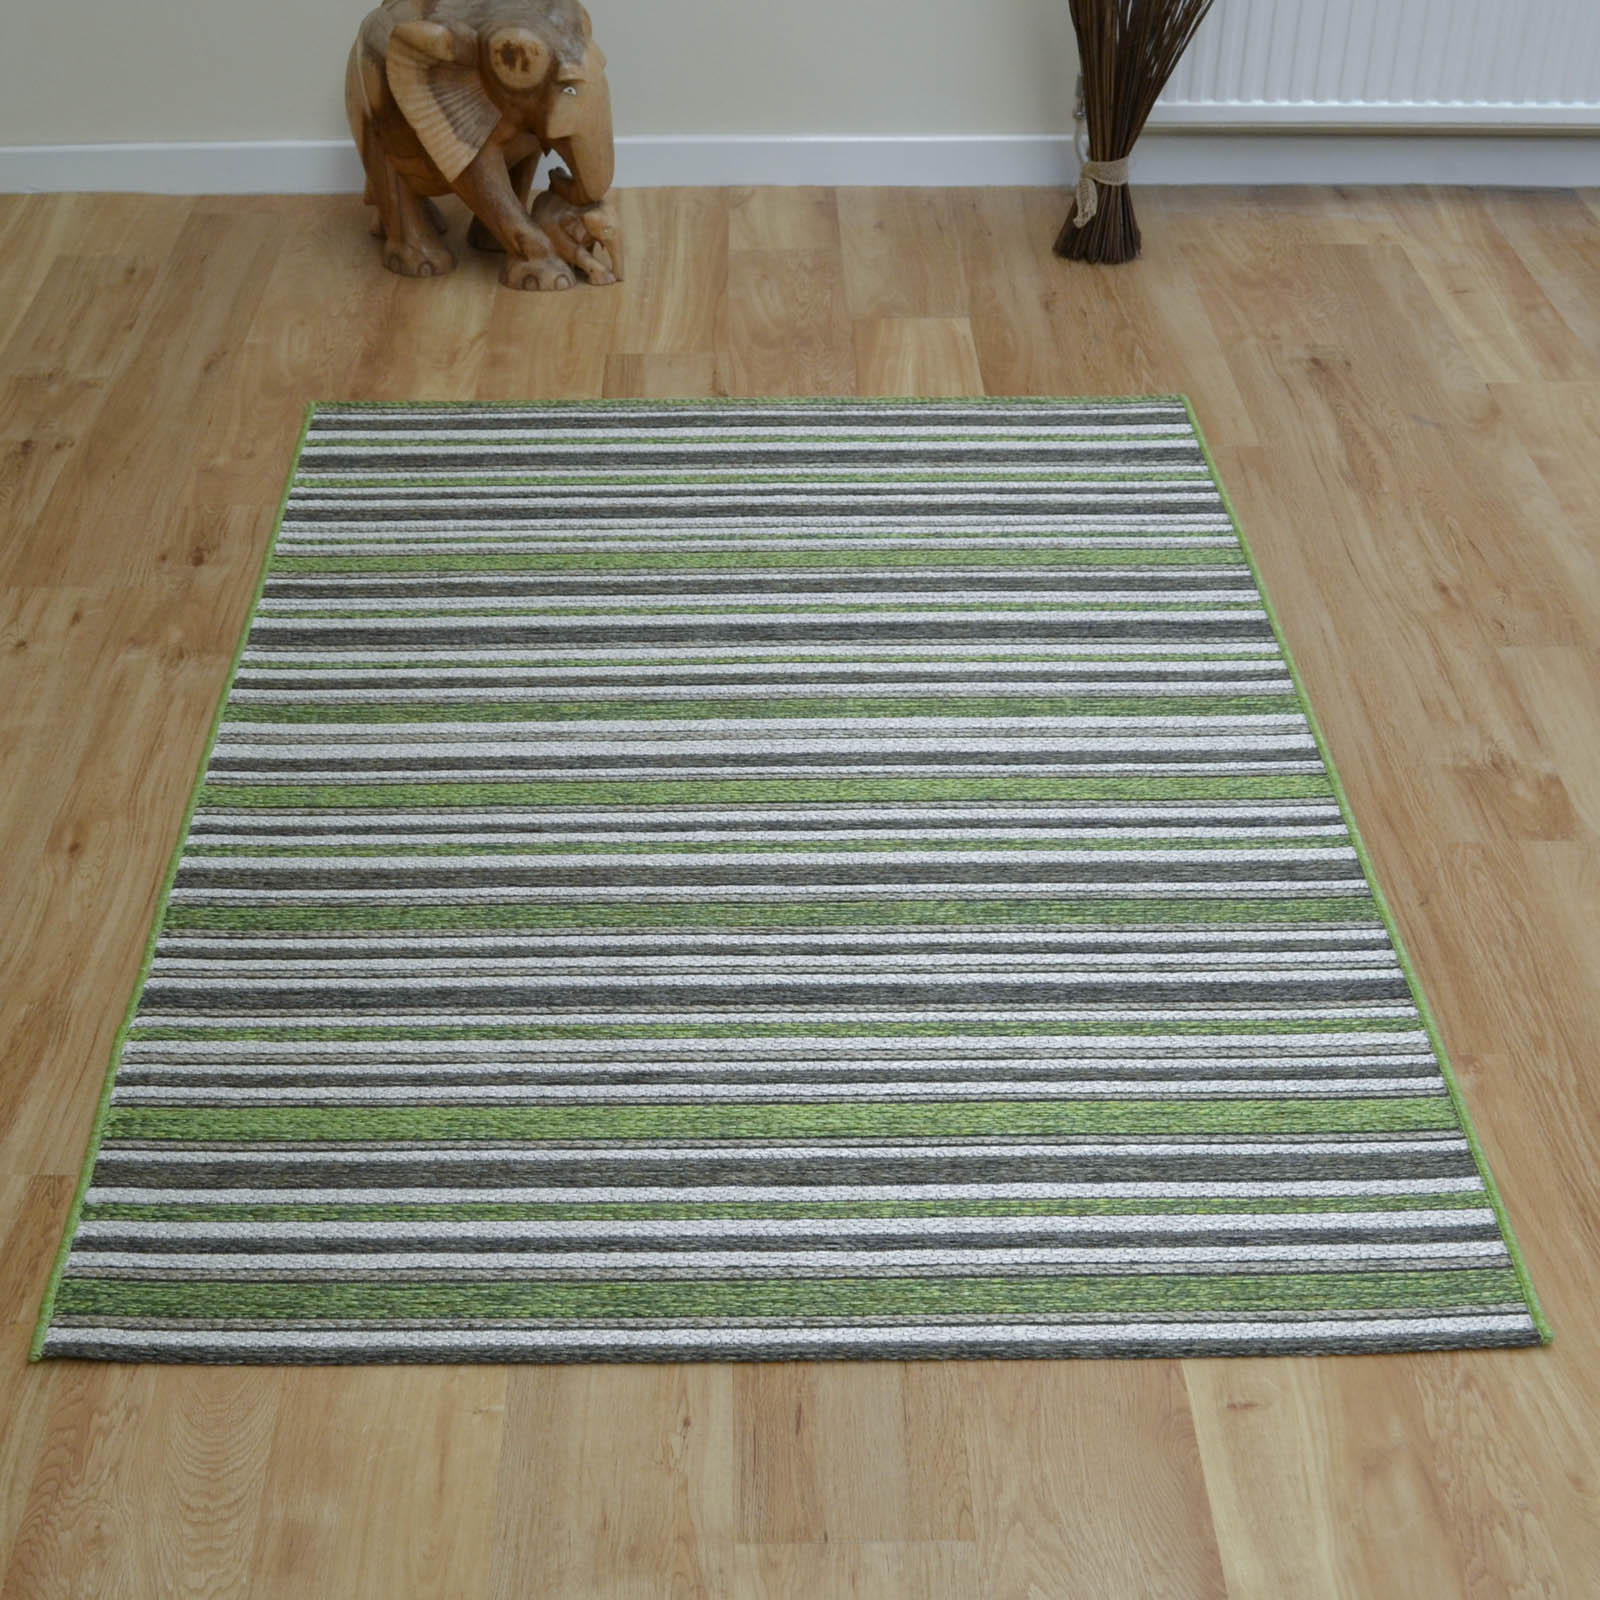 Brighton Rugs 98170 4001 in Green